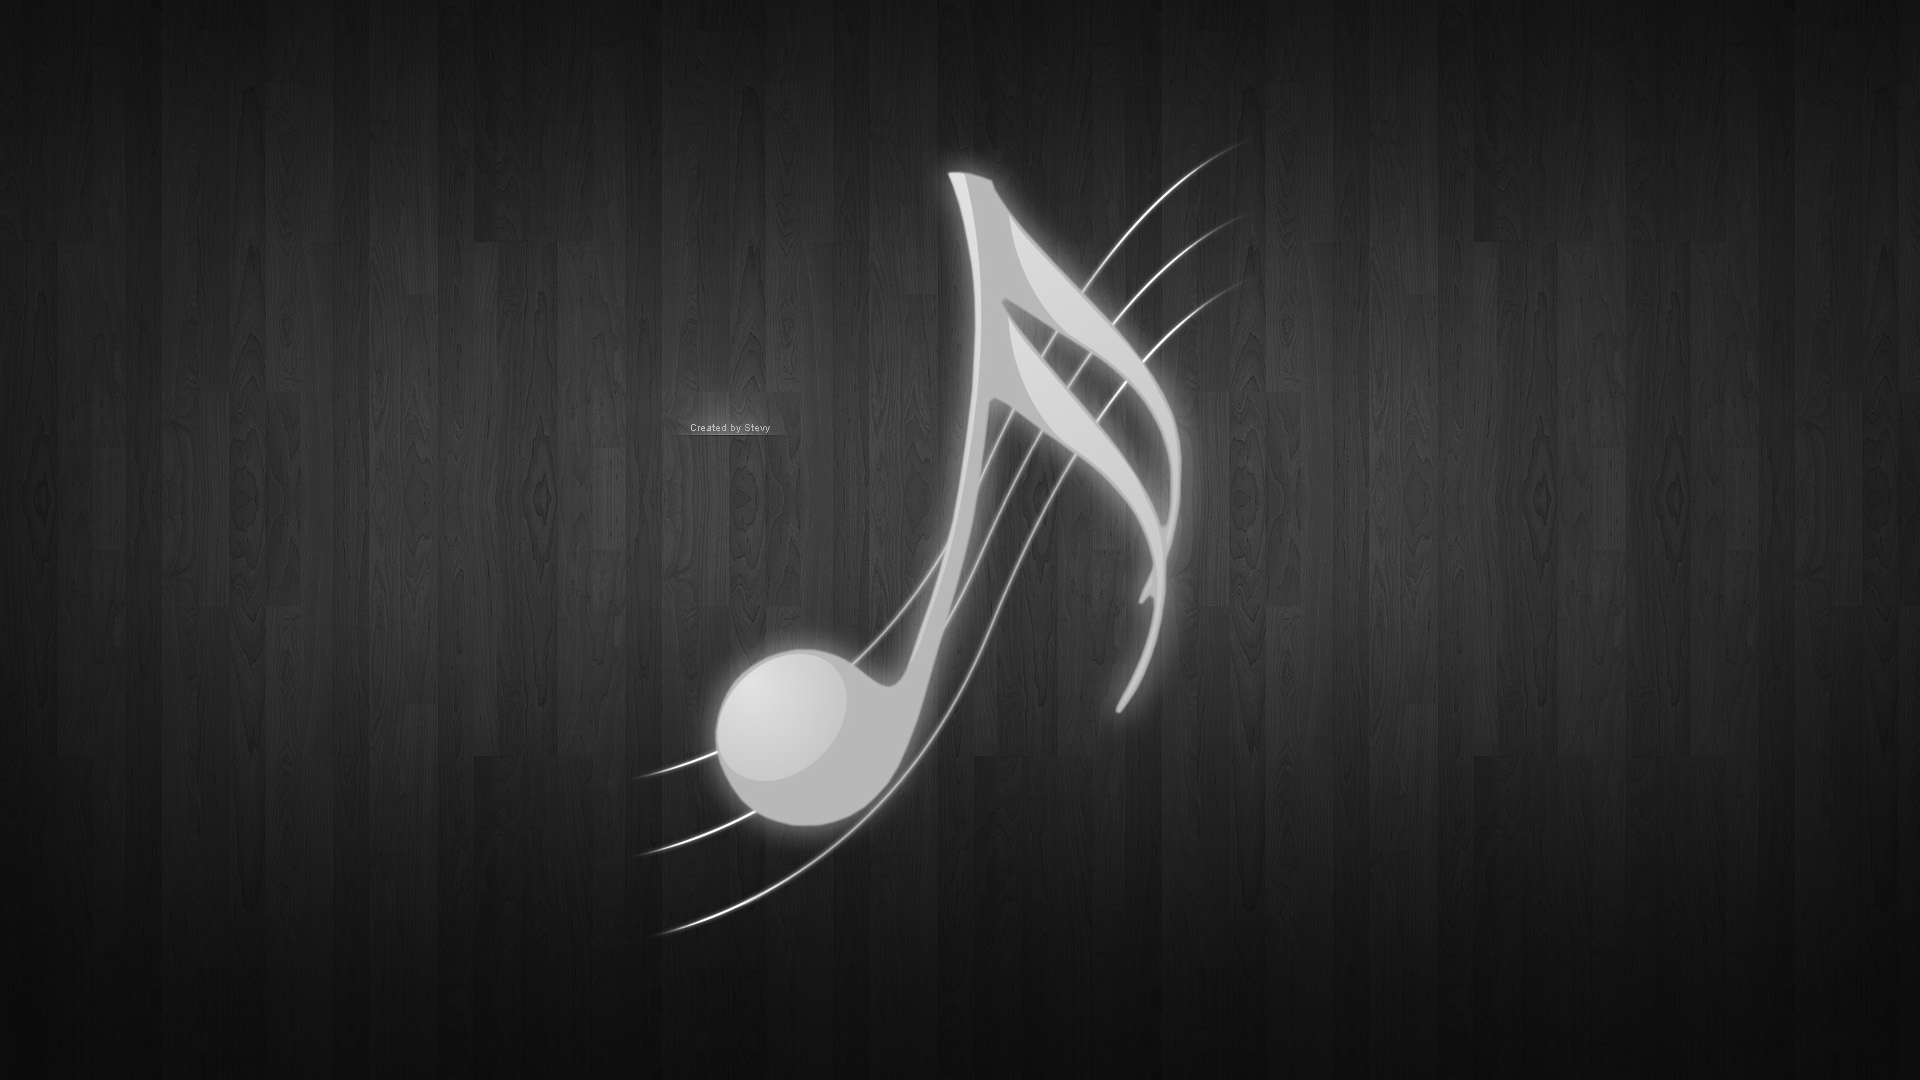 1920x1080 px Music Computer Wallpapers, 7-THemes.com